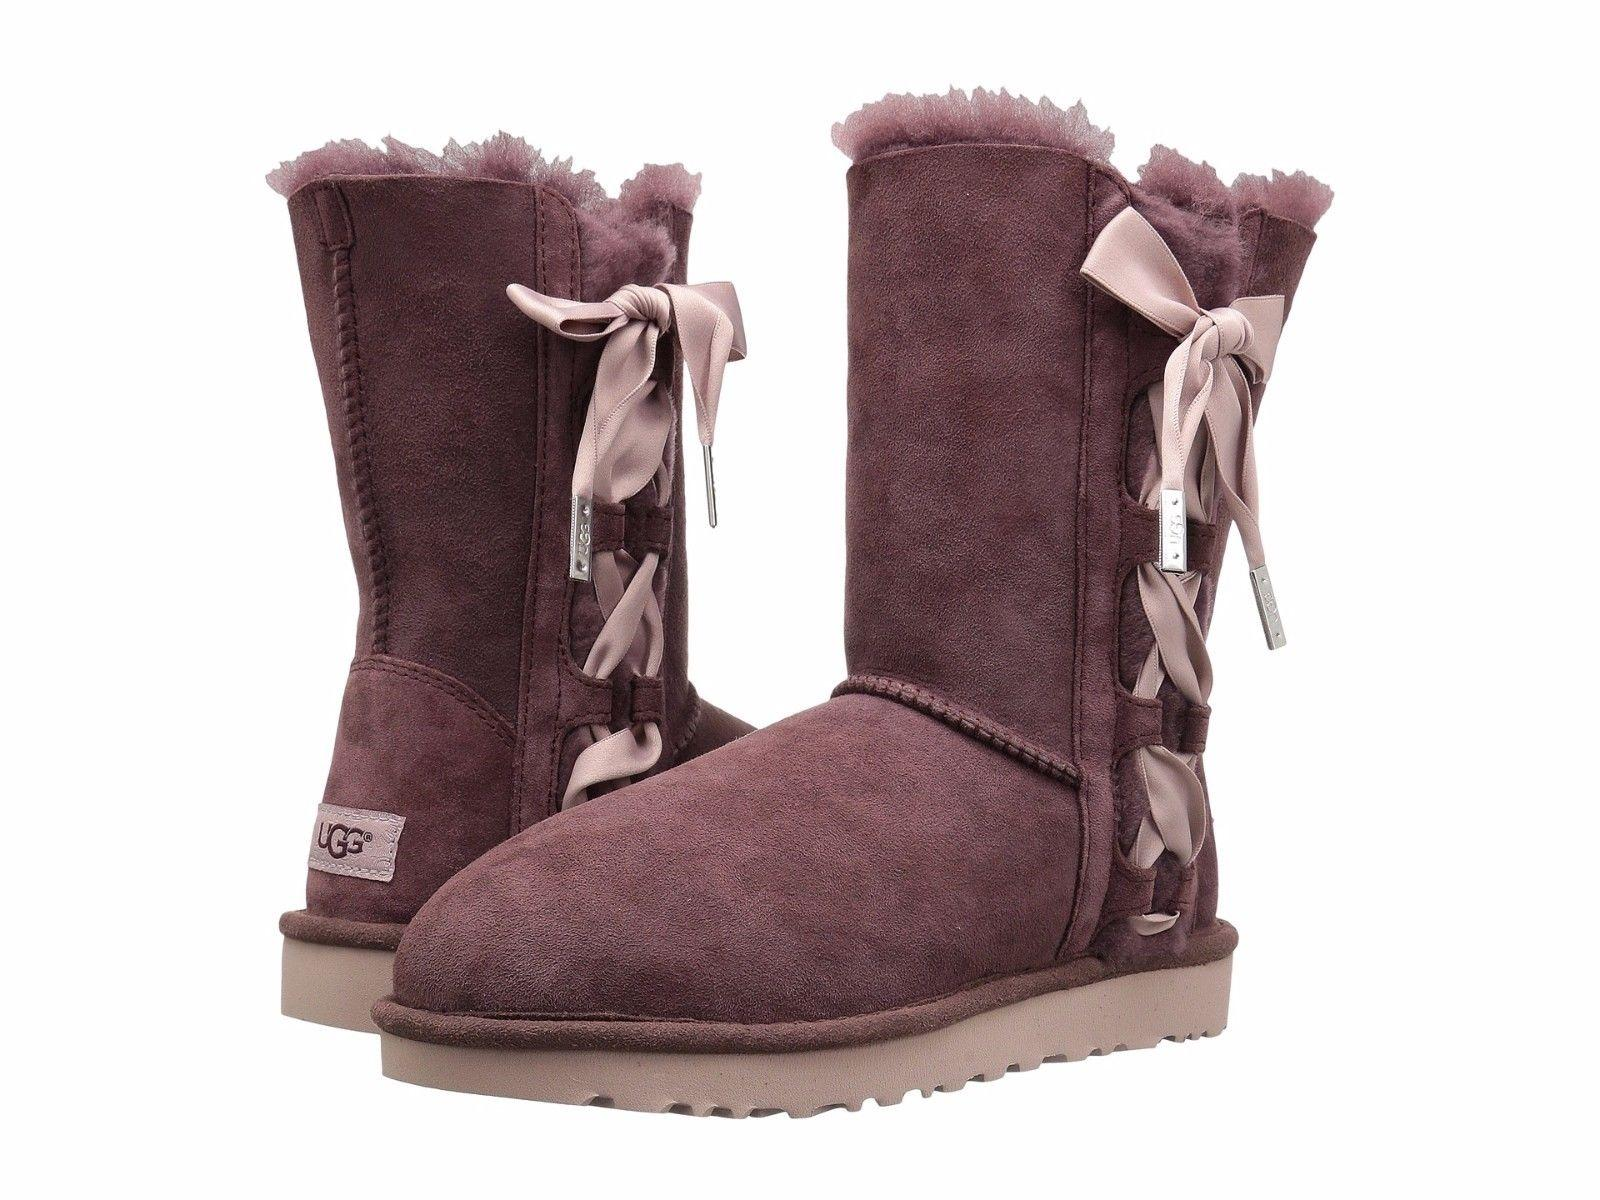 UGG Australia For Her 1017531 Size 6 Cordovan Boots ...